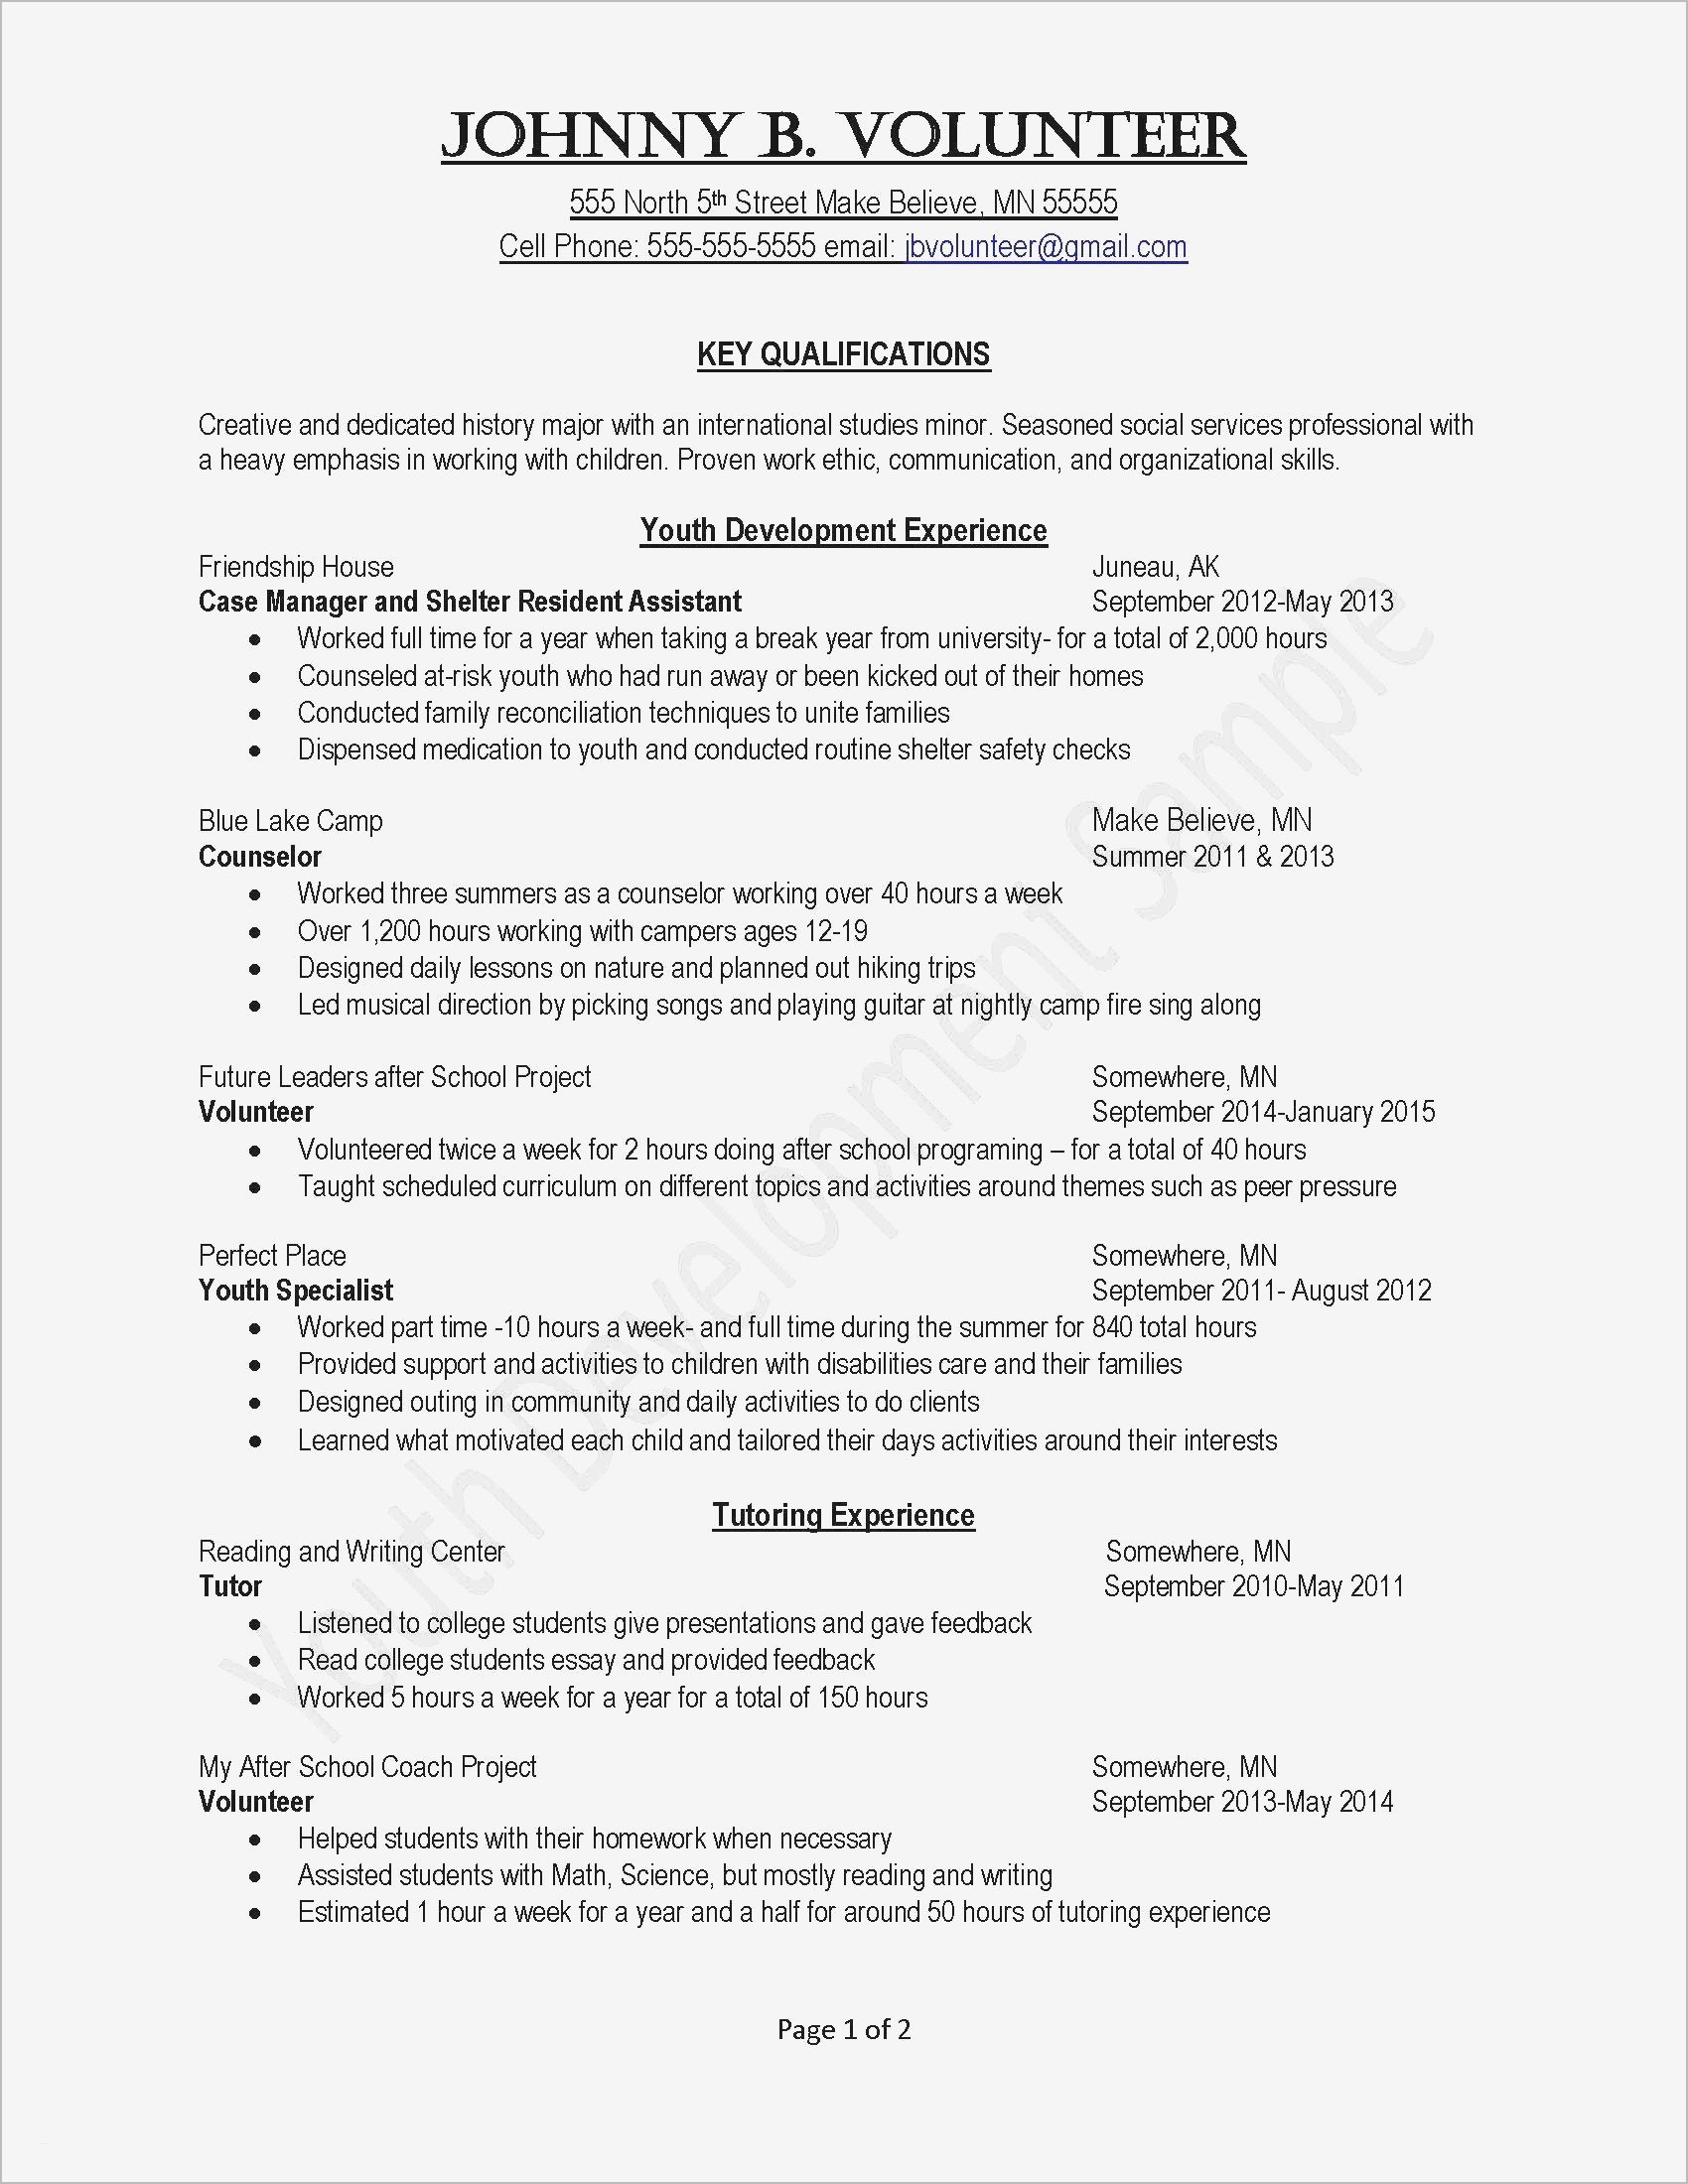 Marketing Letter Template Free - Resume Cover Page Template Free Simple Job Fer Letter Template Us